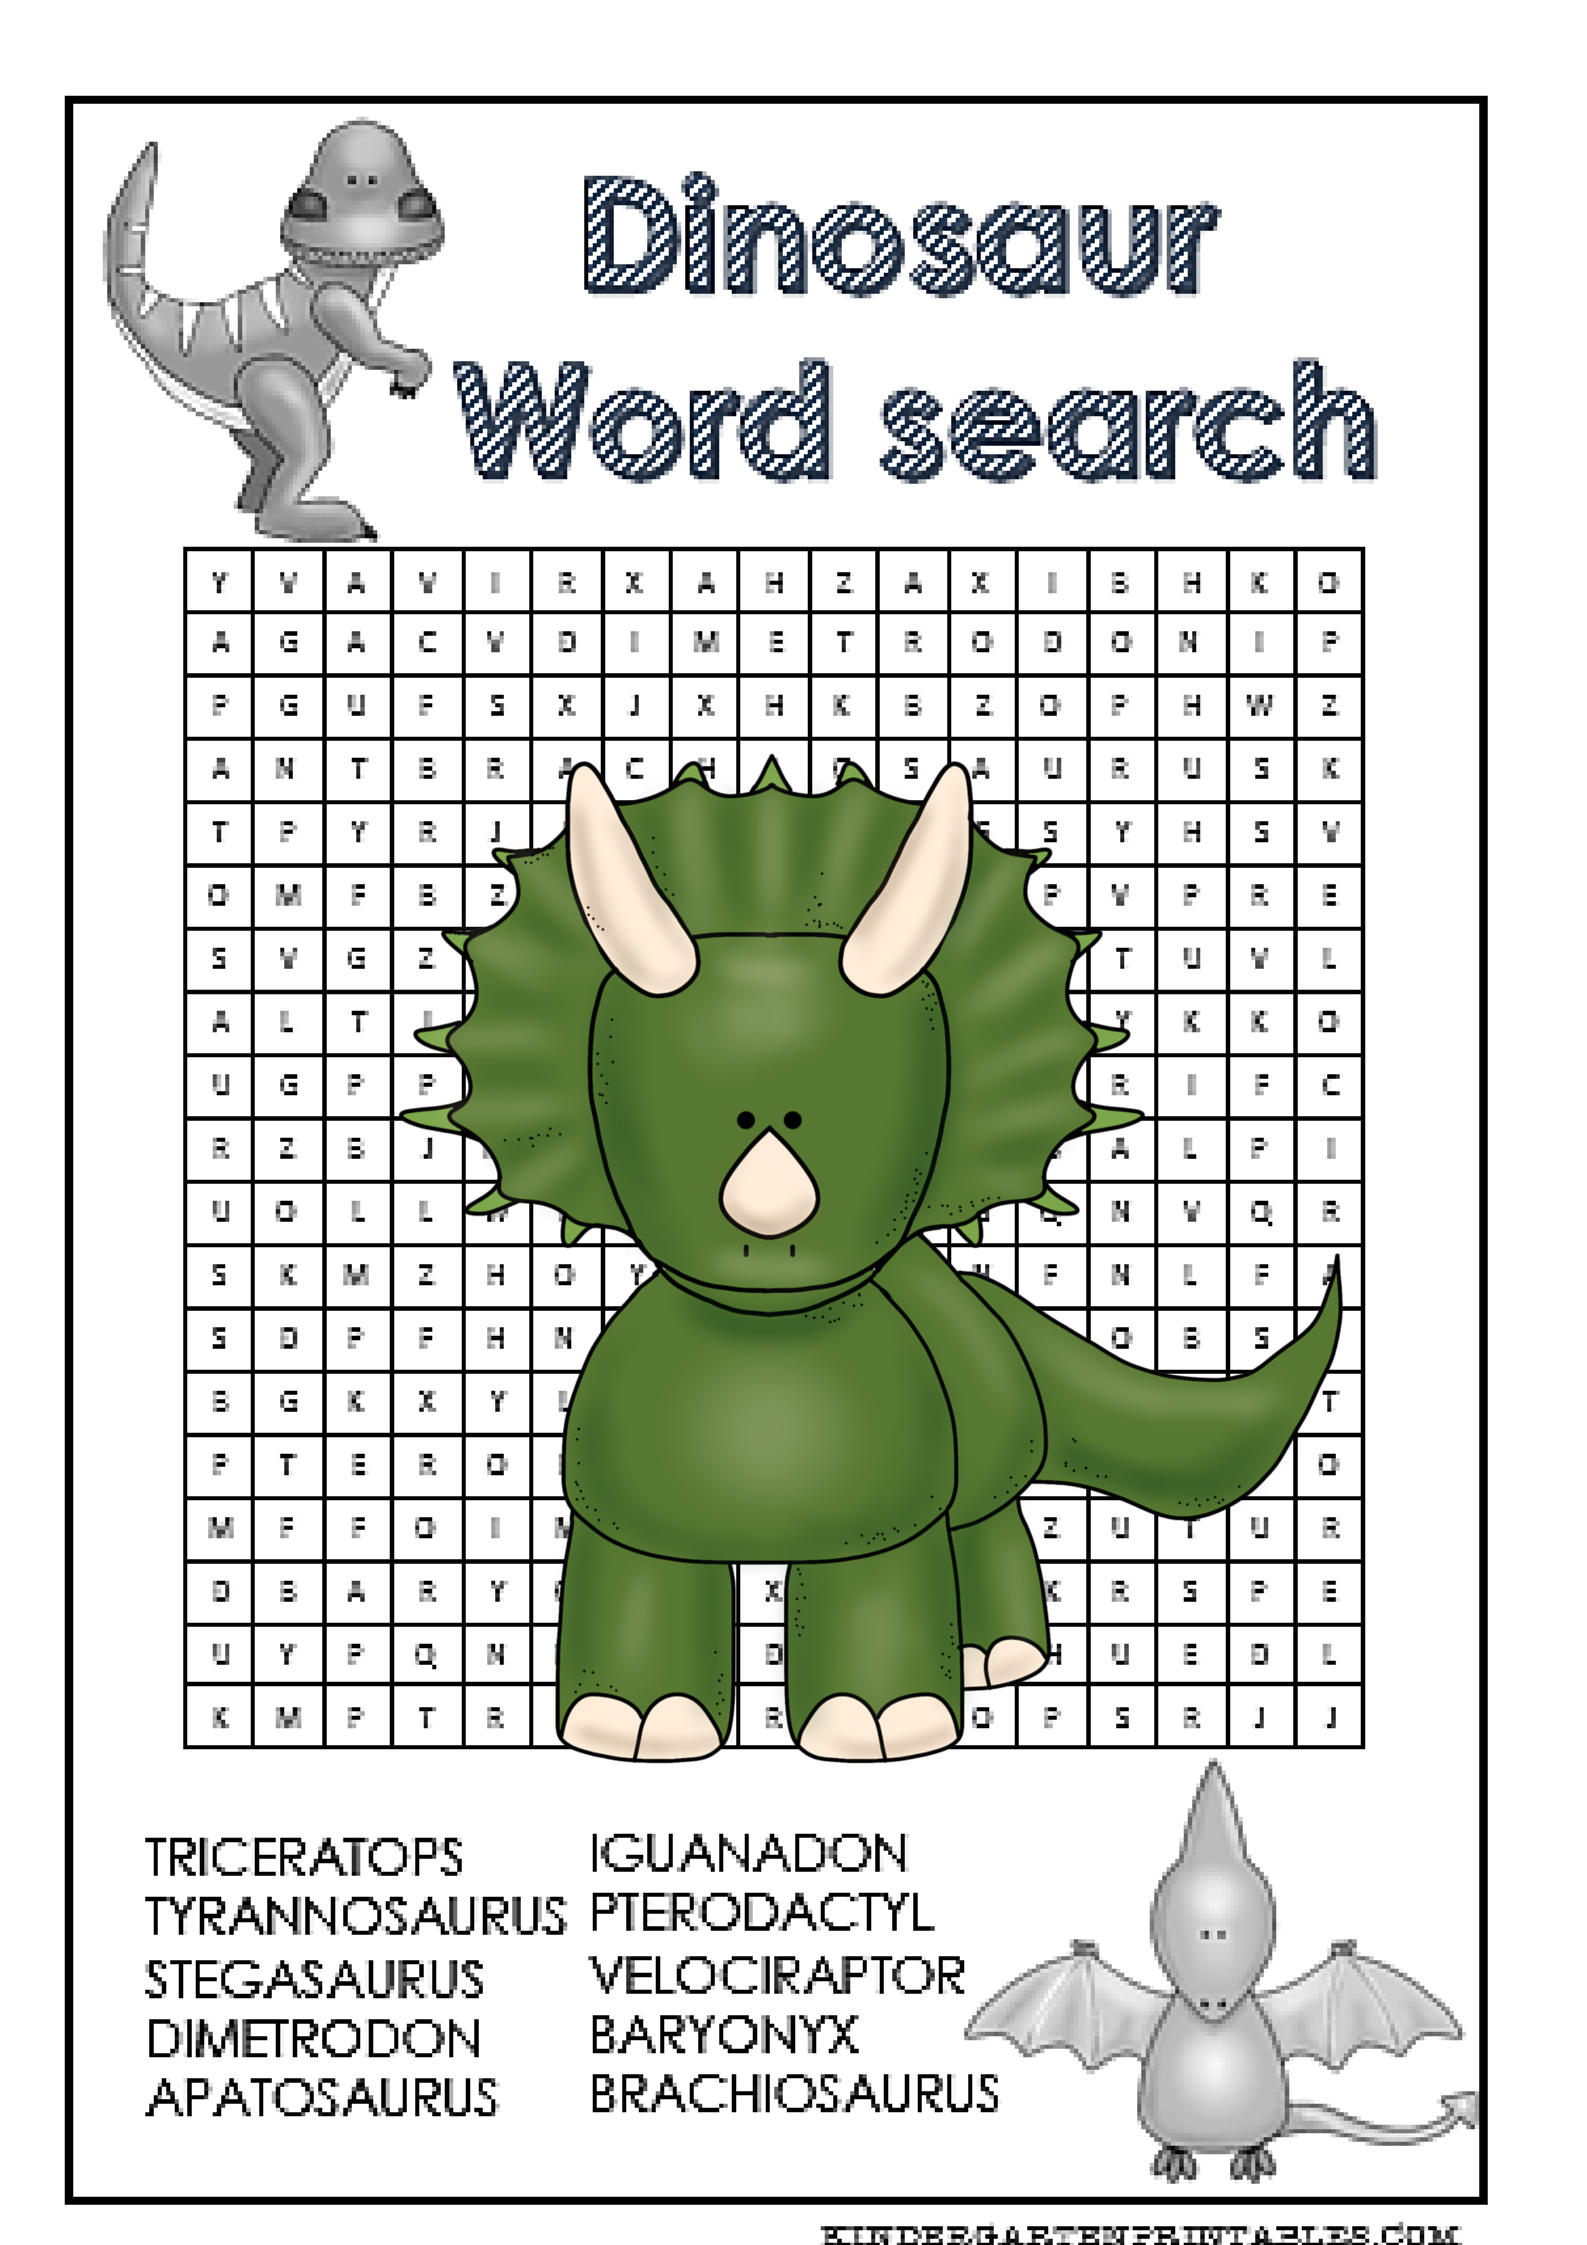 Dinosaur Word Search Free Printable | Word Search | Free Printables - Free Printable Dinosaur Word Search